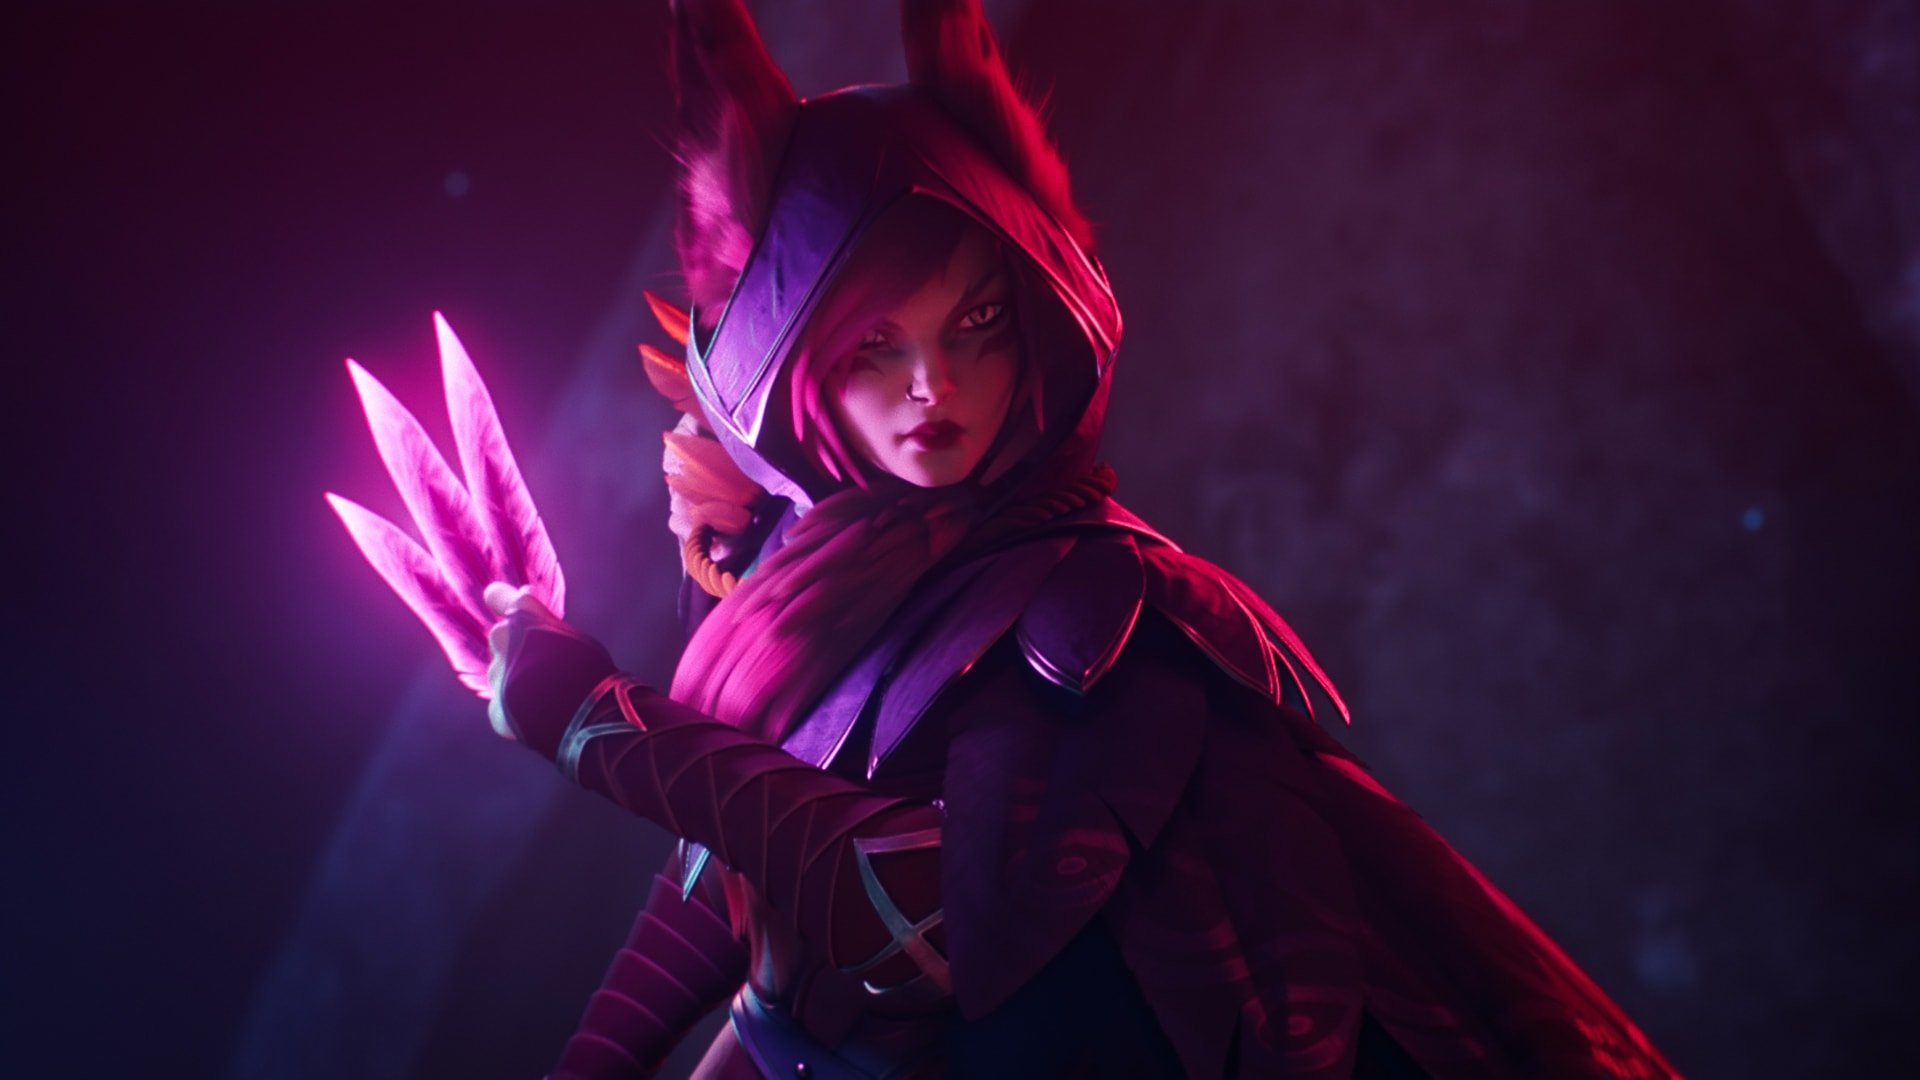 xayah full hd wallpaper and background   1920x1080   id:835014